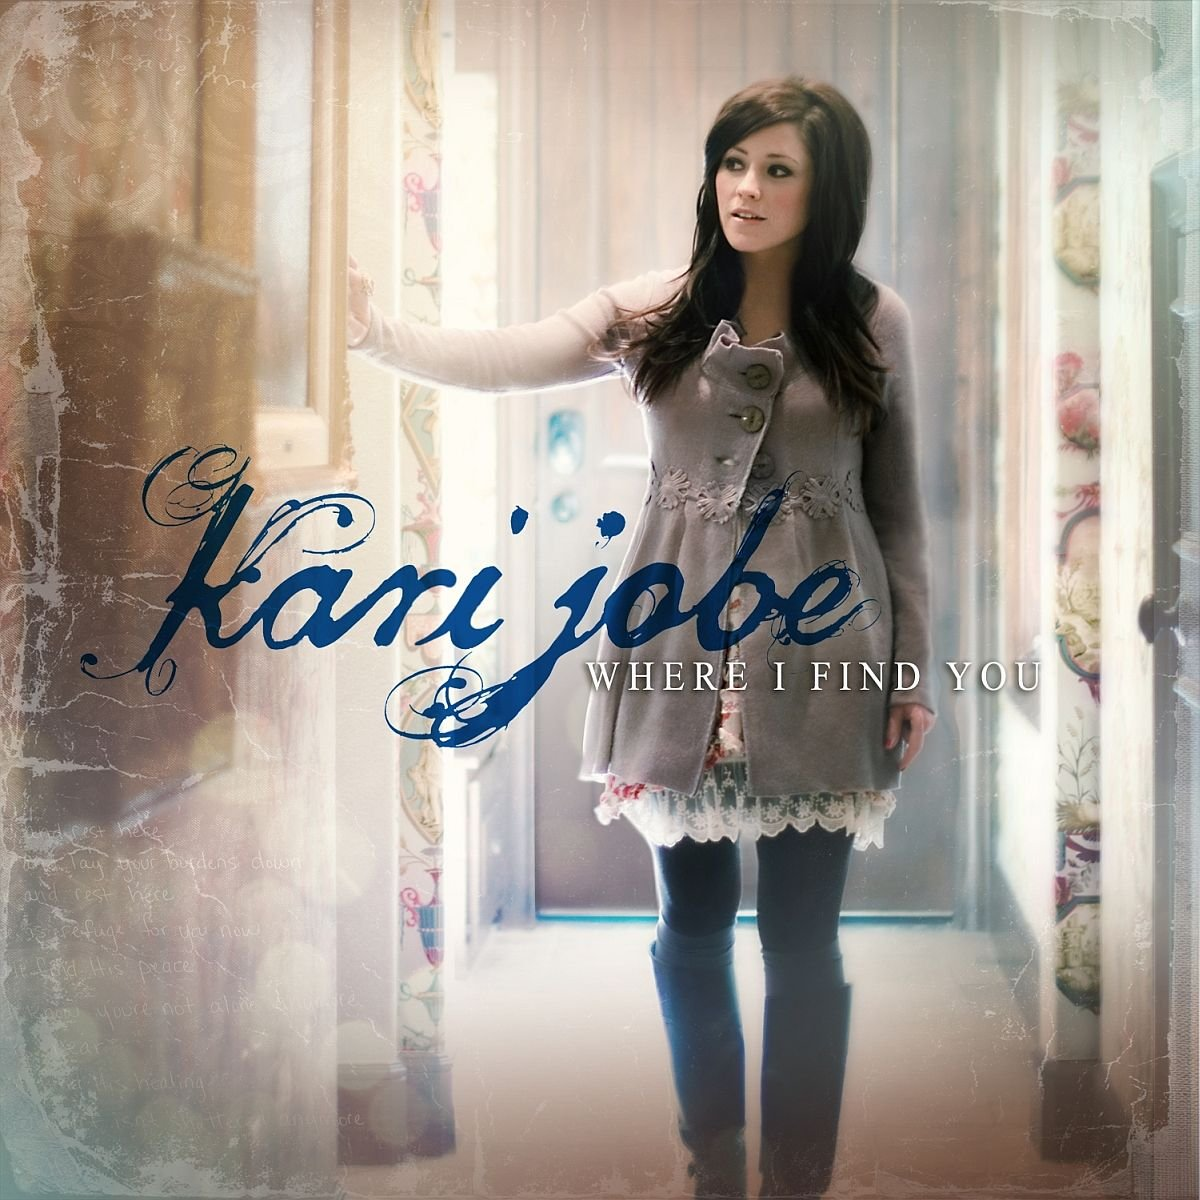 Kari Jobe - Where I Find You - Amazon.com Music